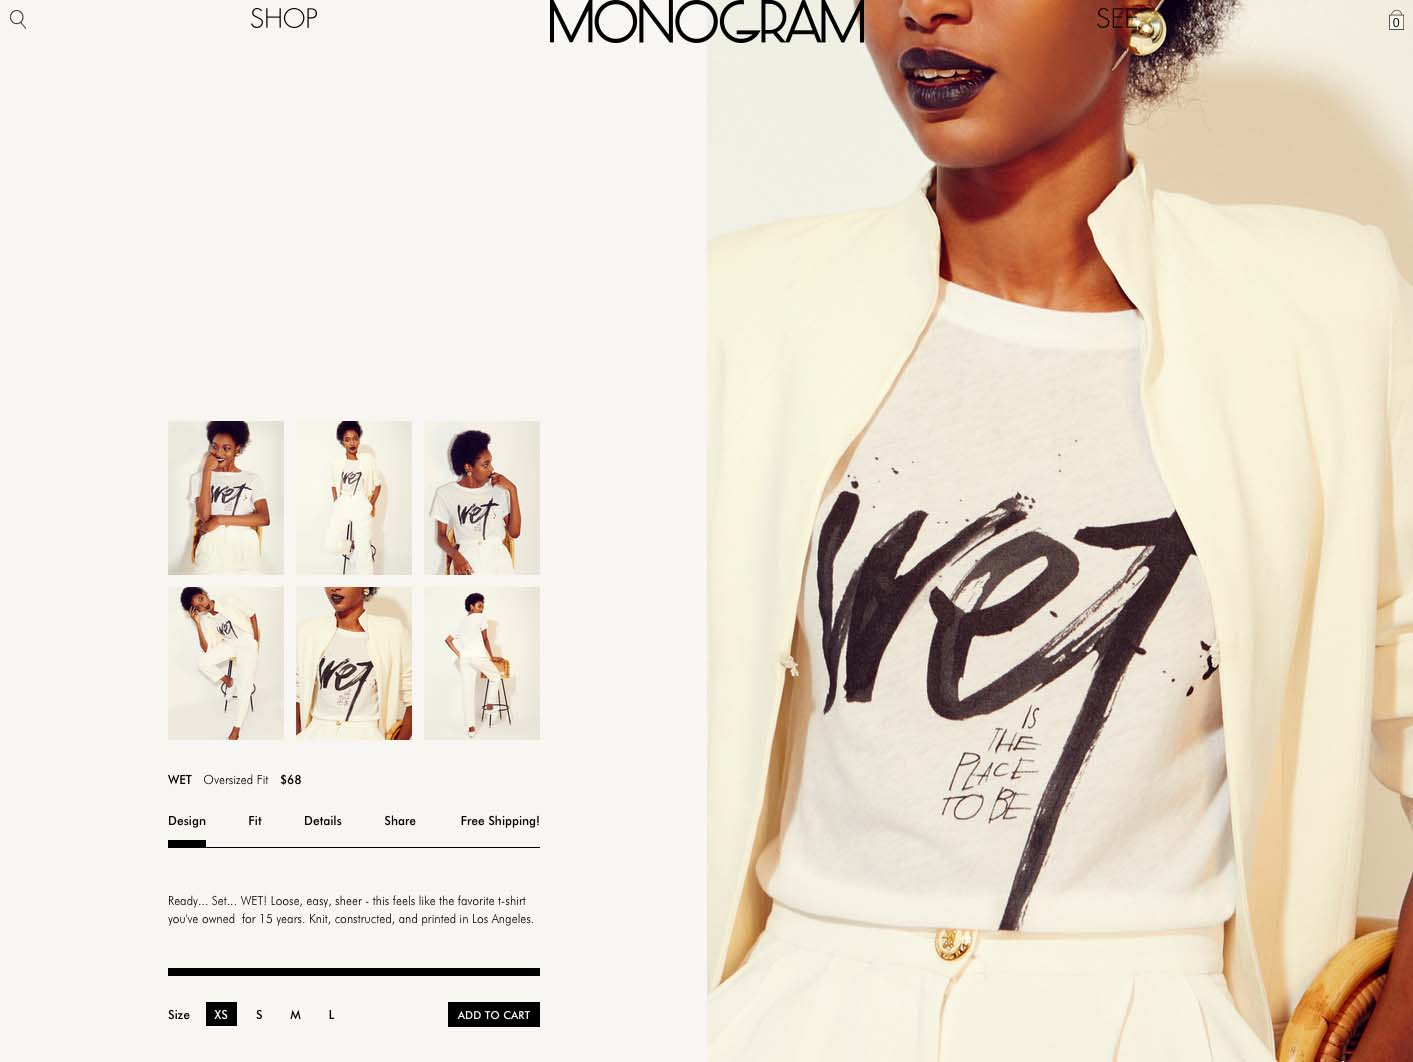 Monogram ecommerce design by Scissor.